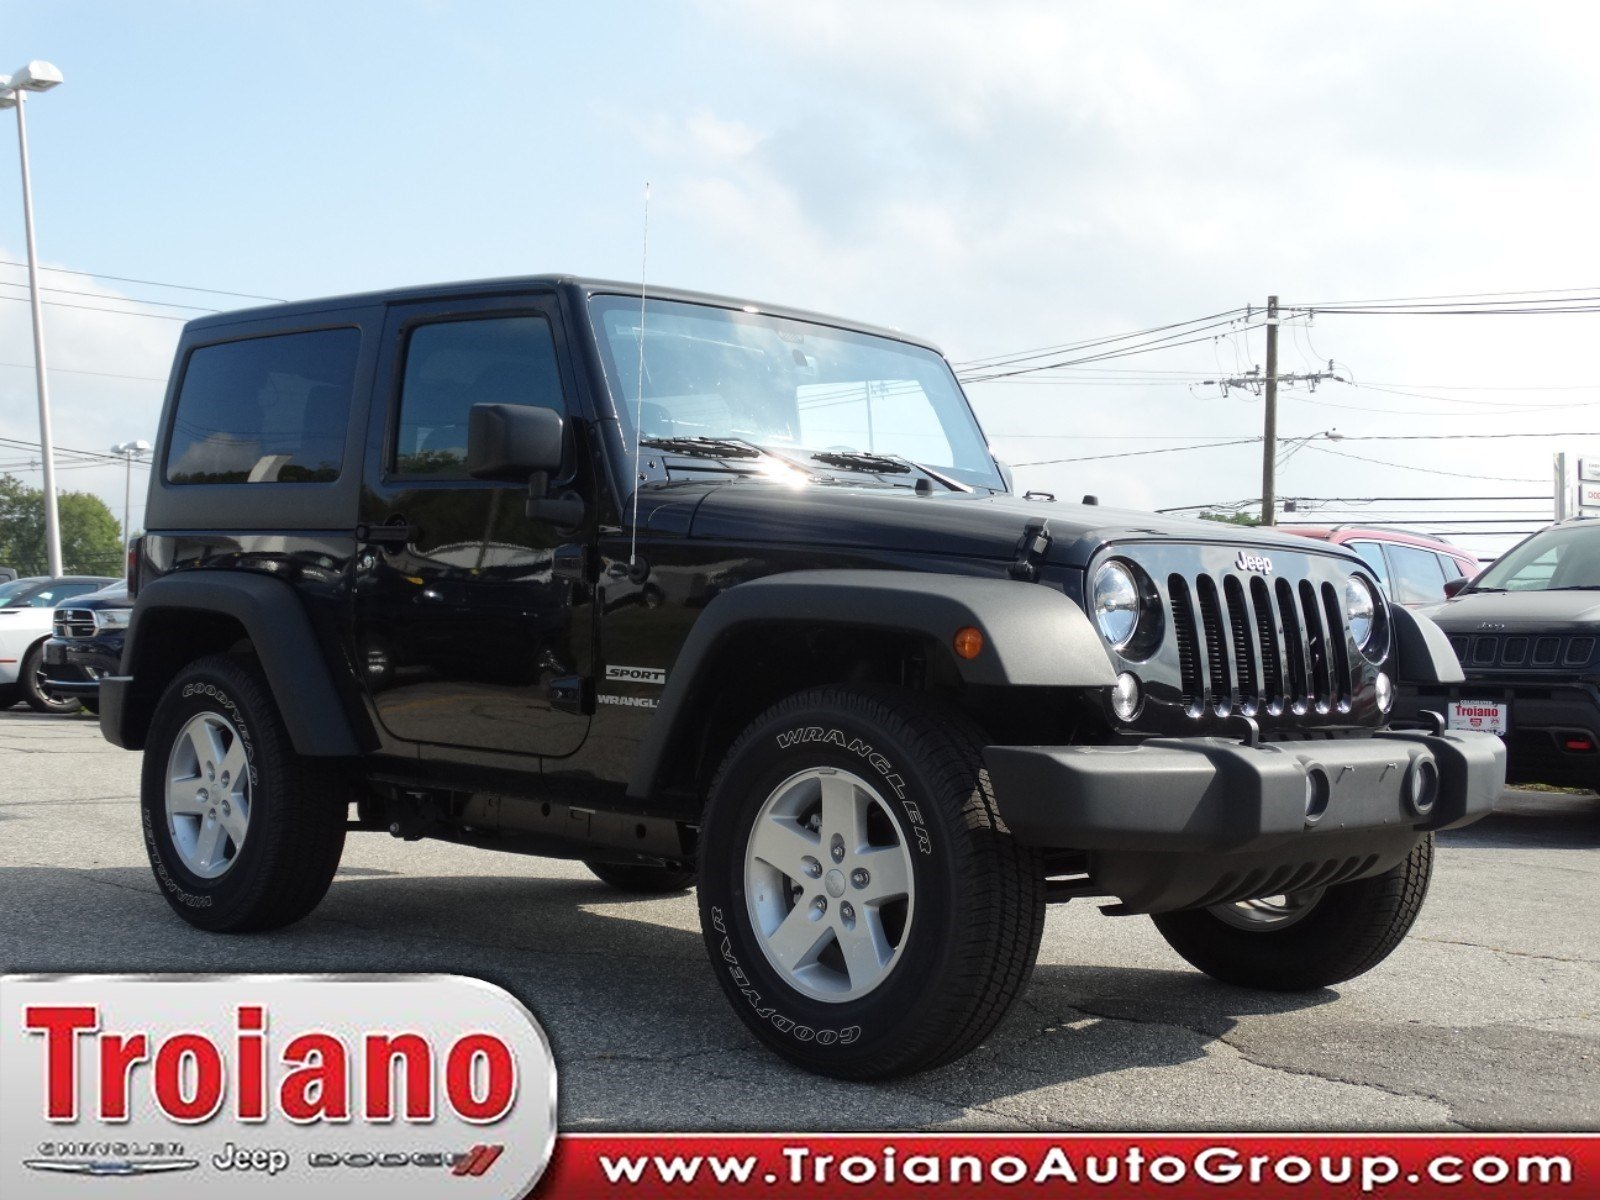 jeep rubicon for gallery new tru wrangler dundalk near image all lok capability htm md baltimore sale traction jl